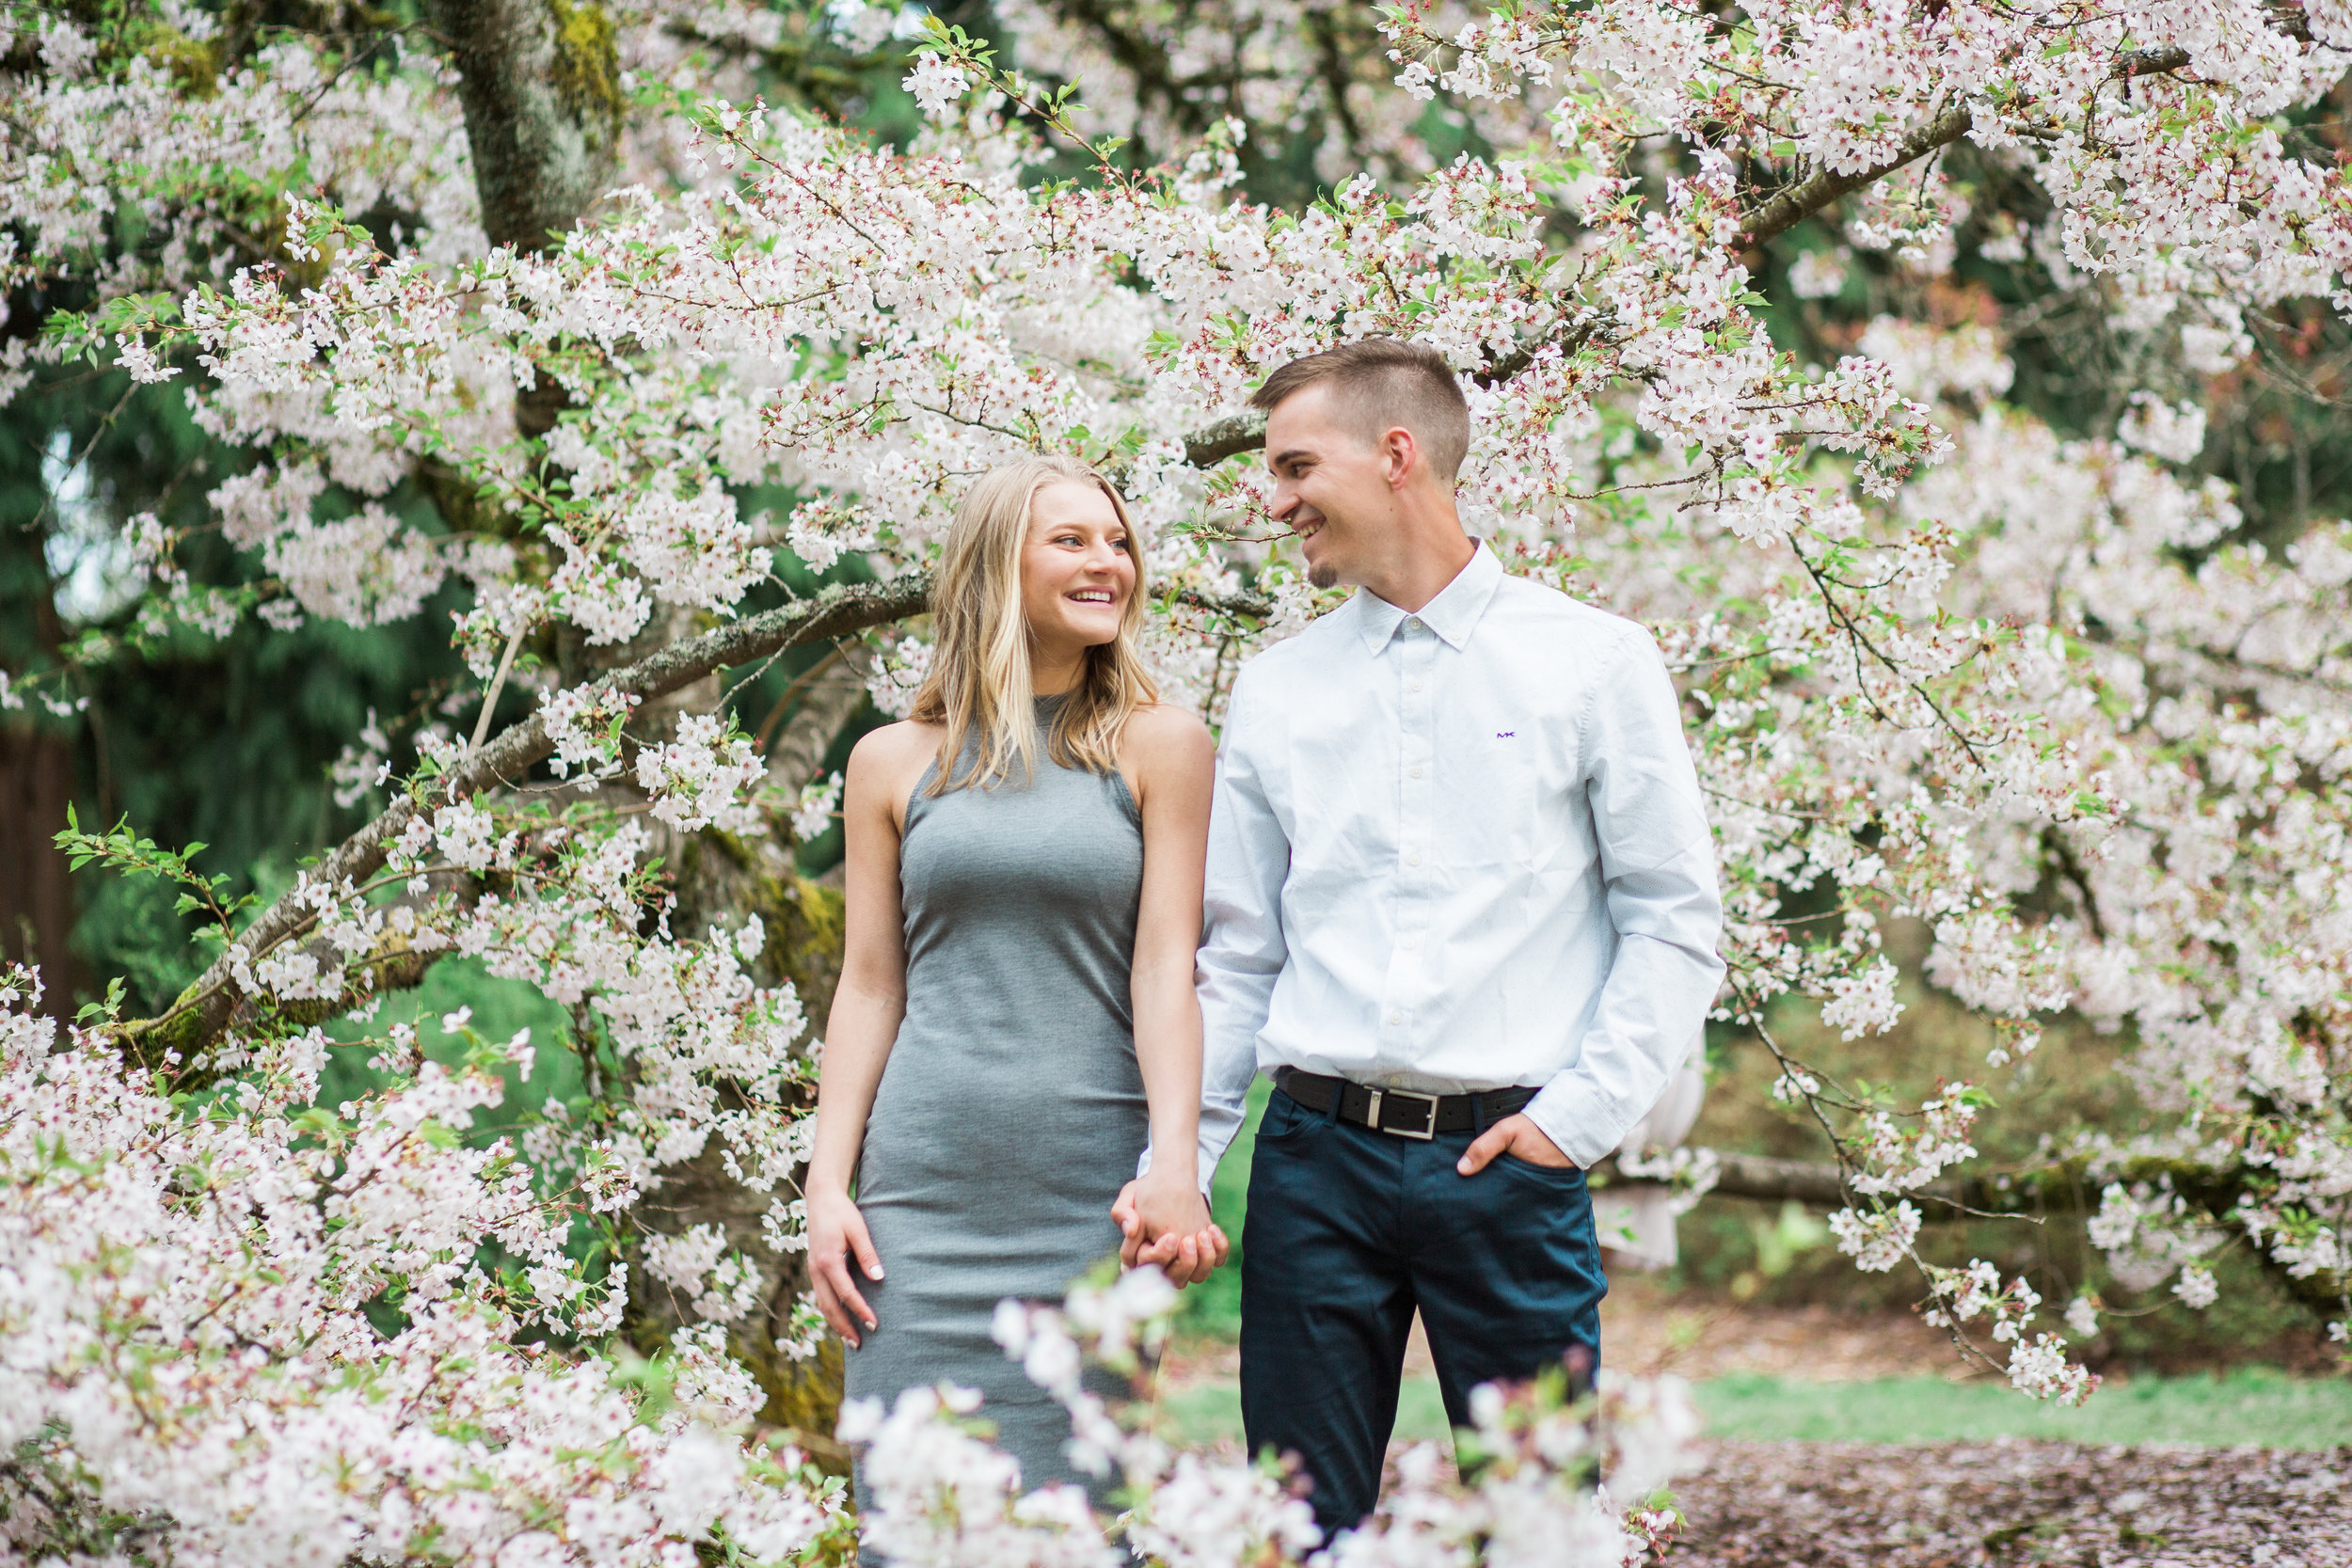 tricia and nate engagement photos-janelle elaine photography-139.jpg